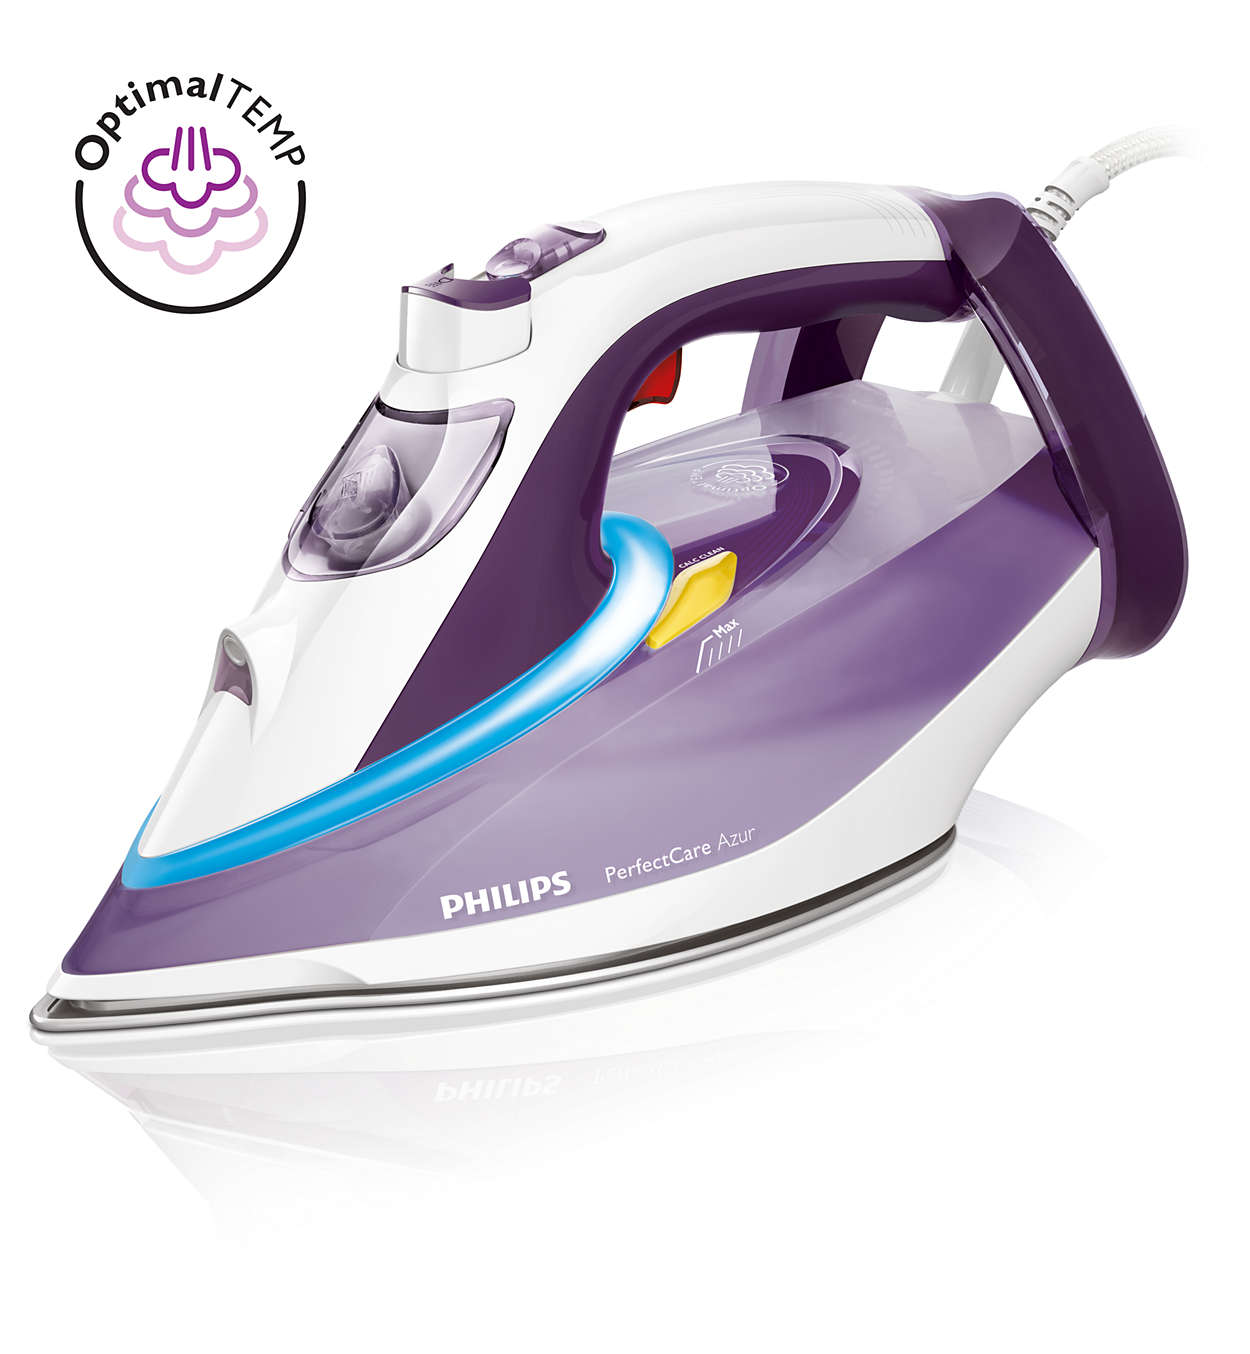 Fastest Philips steam iron*